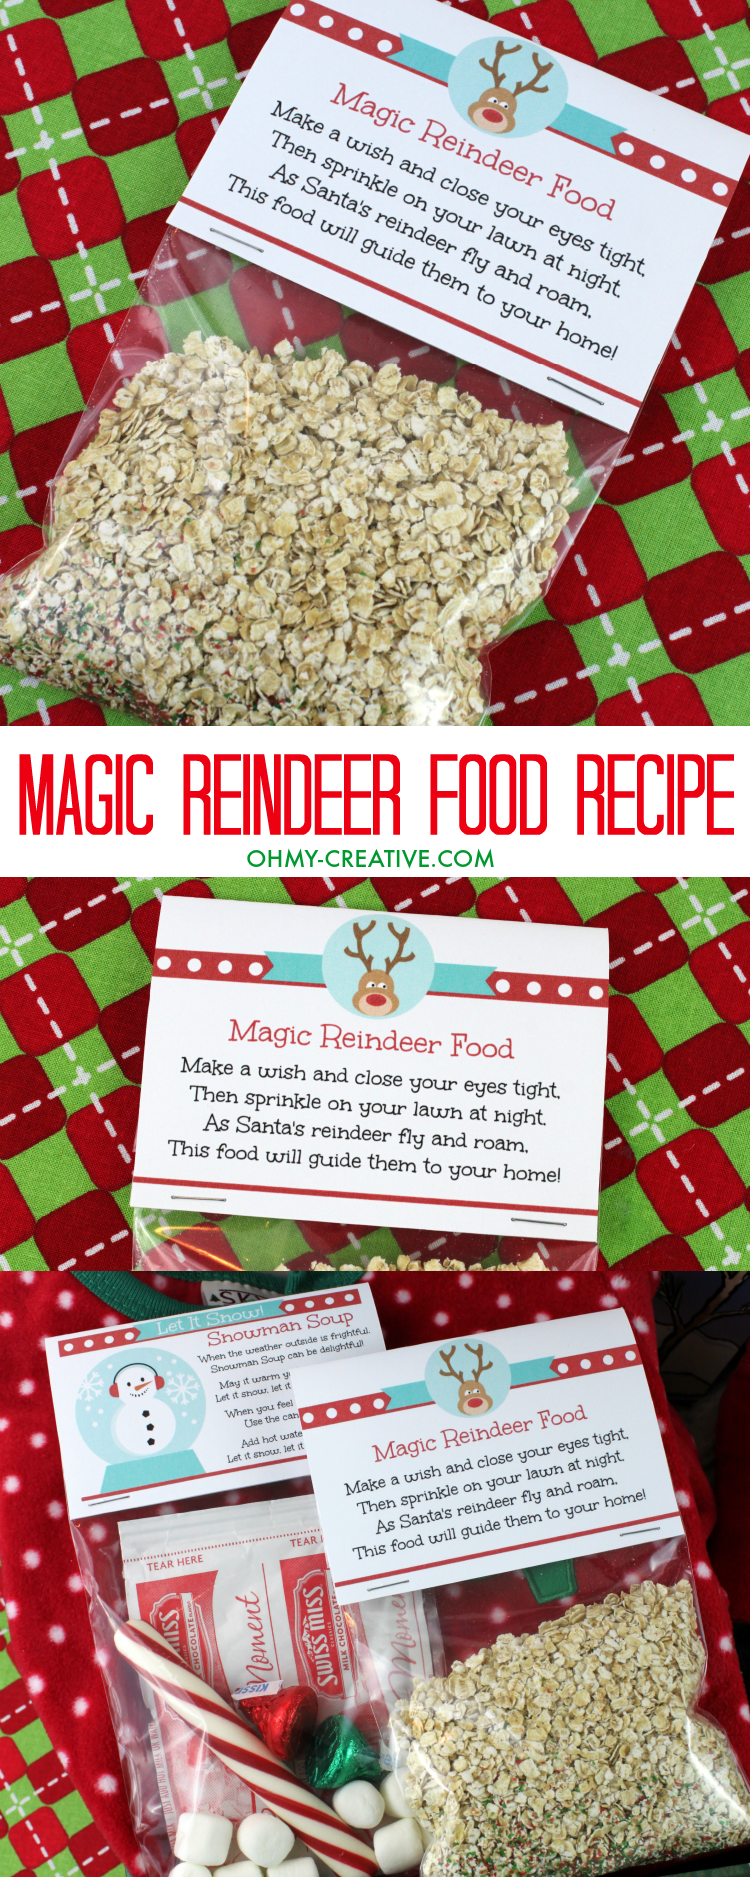 graphic regarding Reindeer Food Labels Printable identify Magic Reindeer Food items Recipe and Printable - Oh My Imaginative